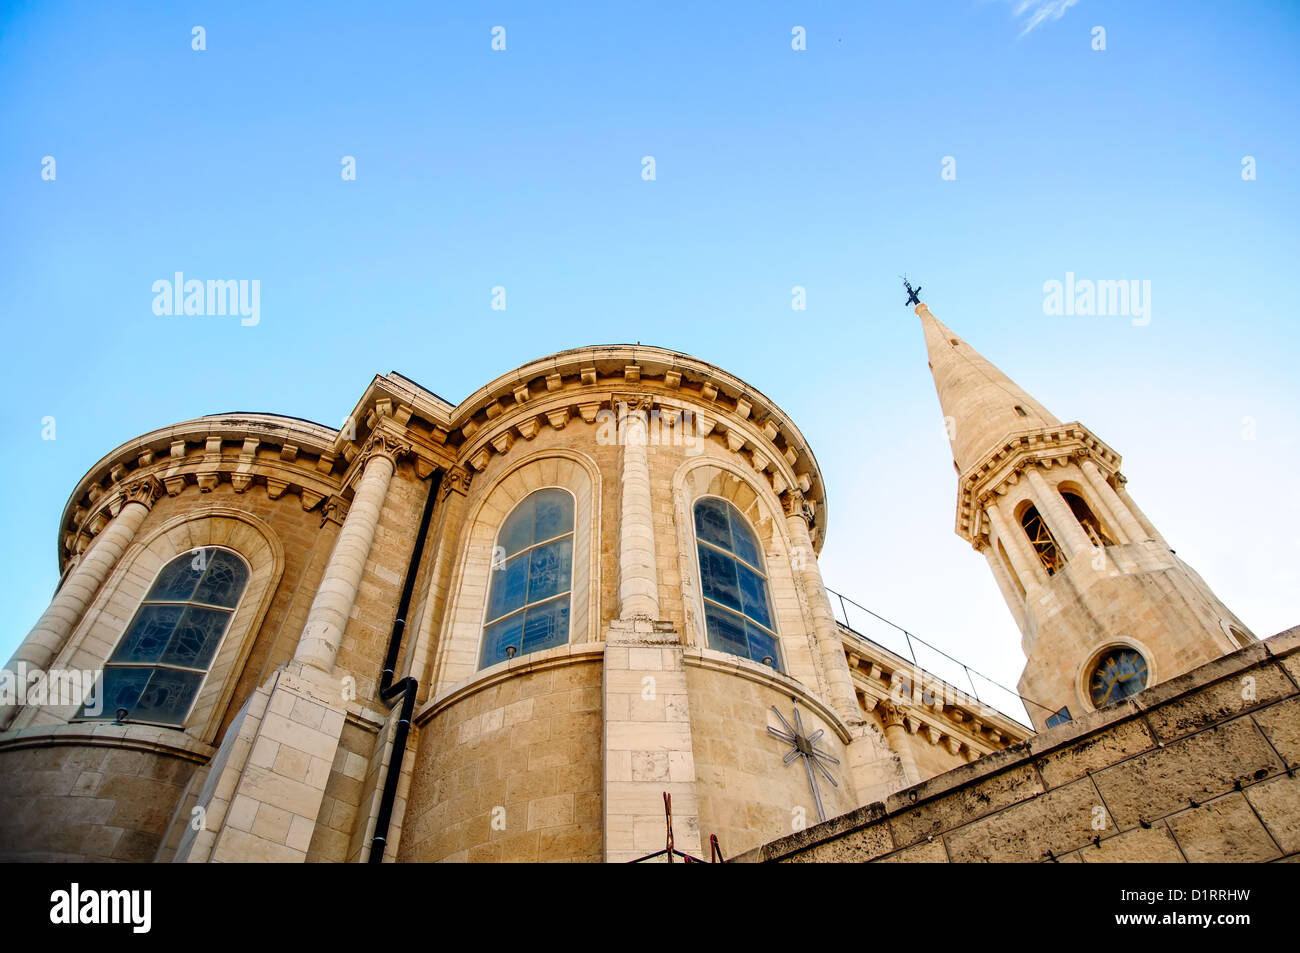 The Evangelical Lutheran Christmas Church in Bethlehem, - Stock Image